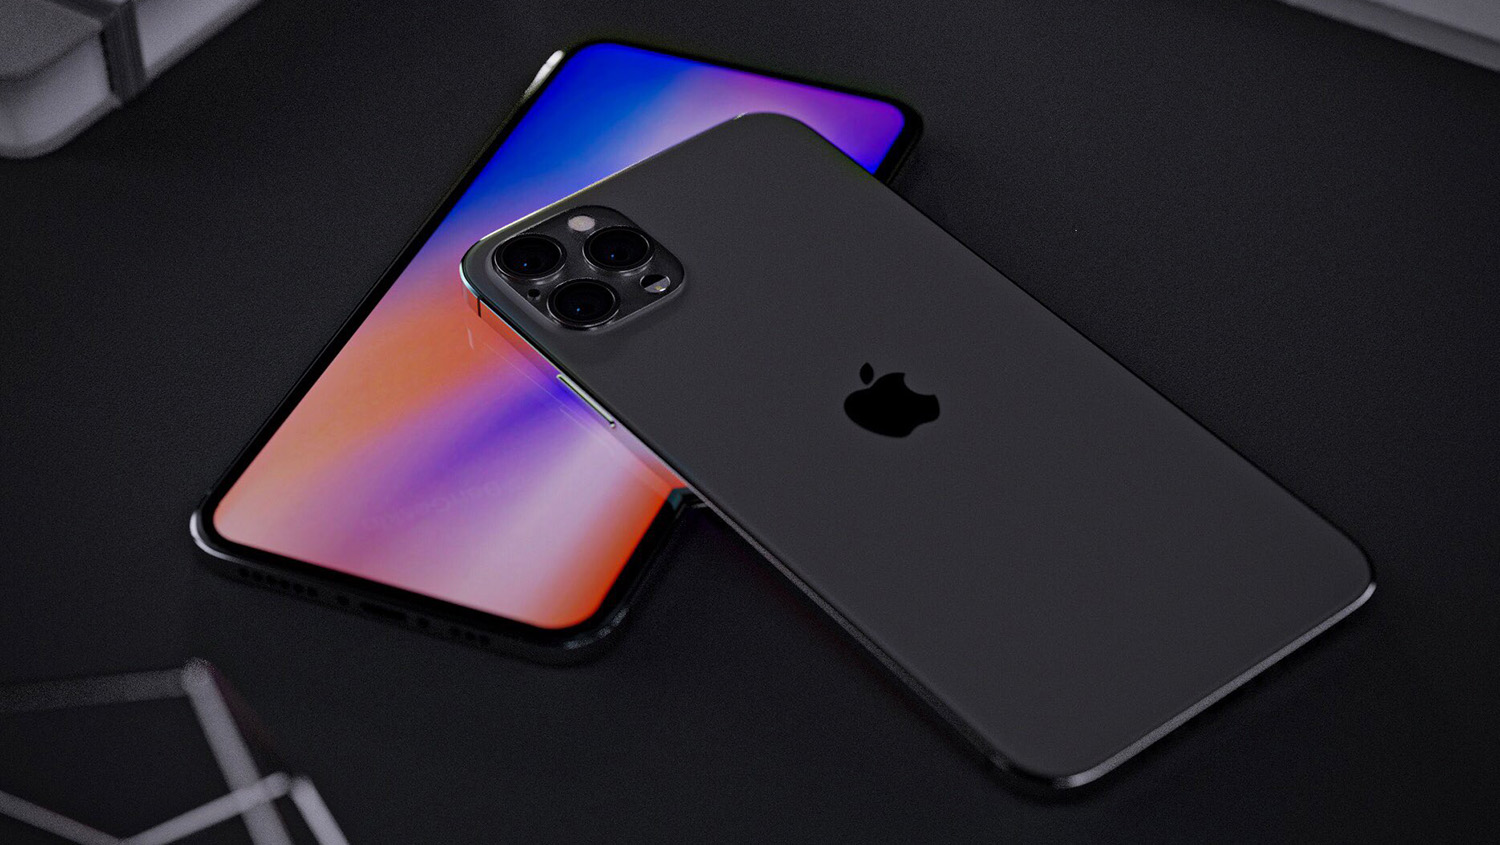 iPhone 12 Naming Scheme May Be Used for 2020, Dropping